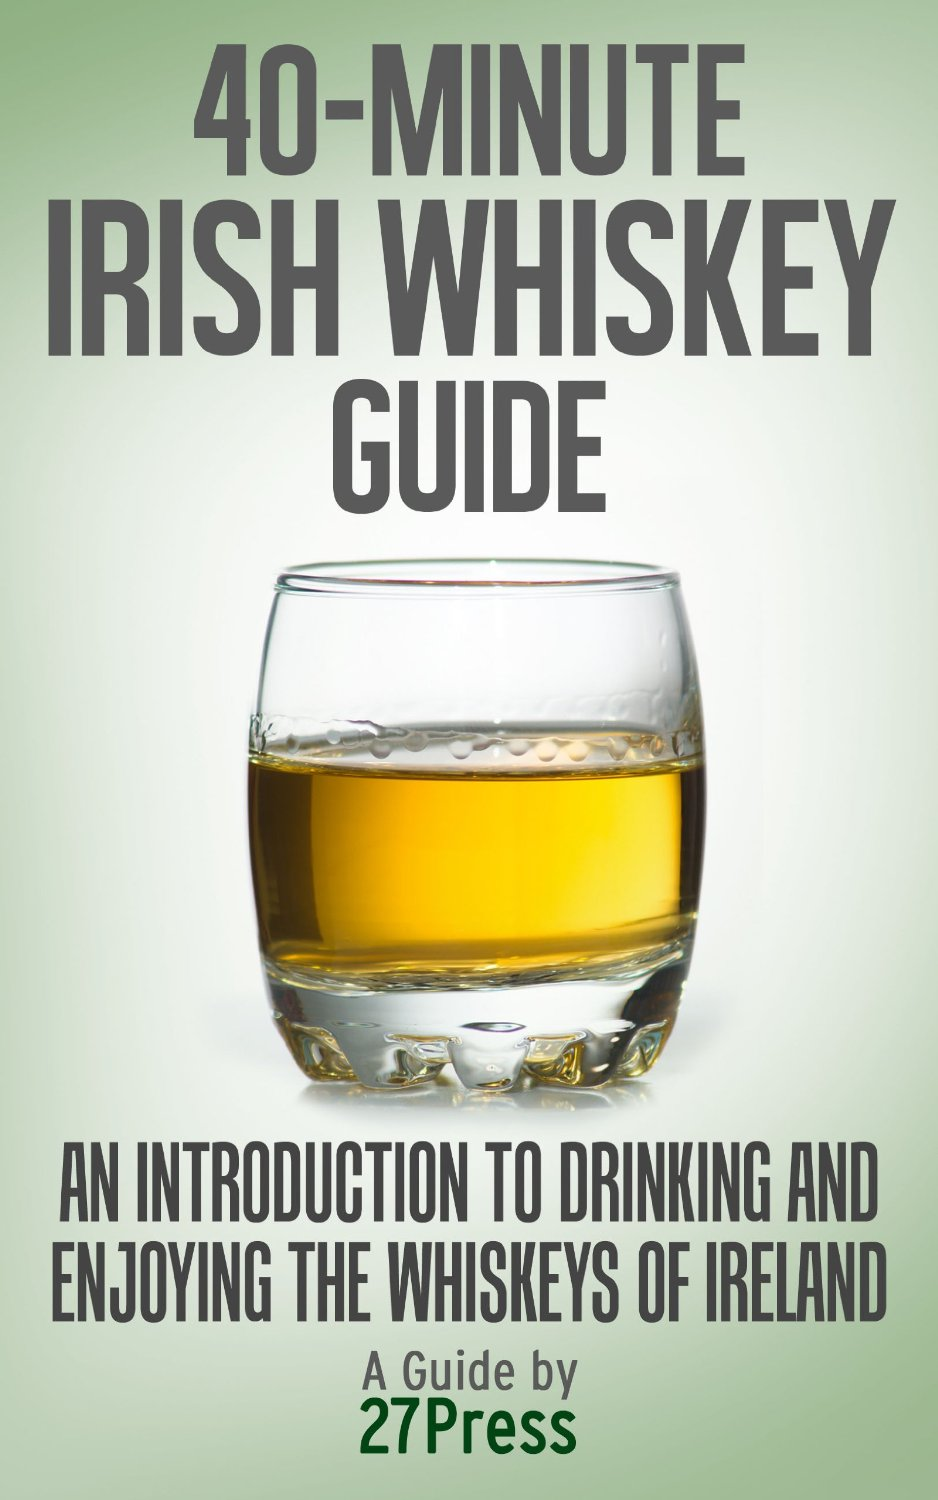 The 40 Minute Irish Whiskey Guide